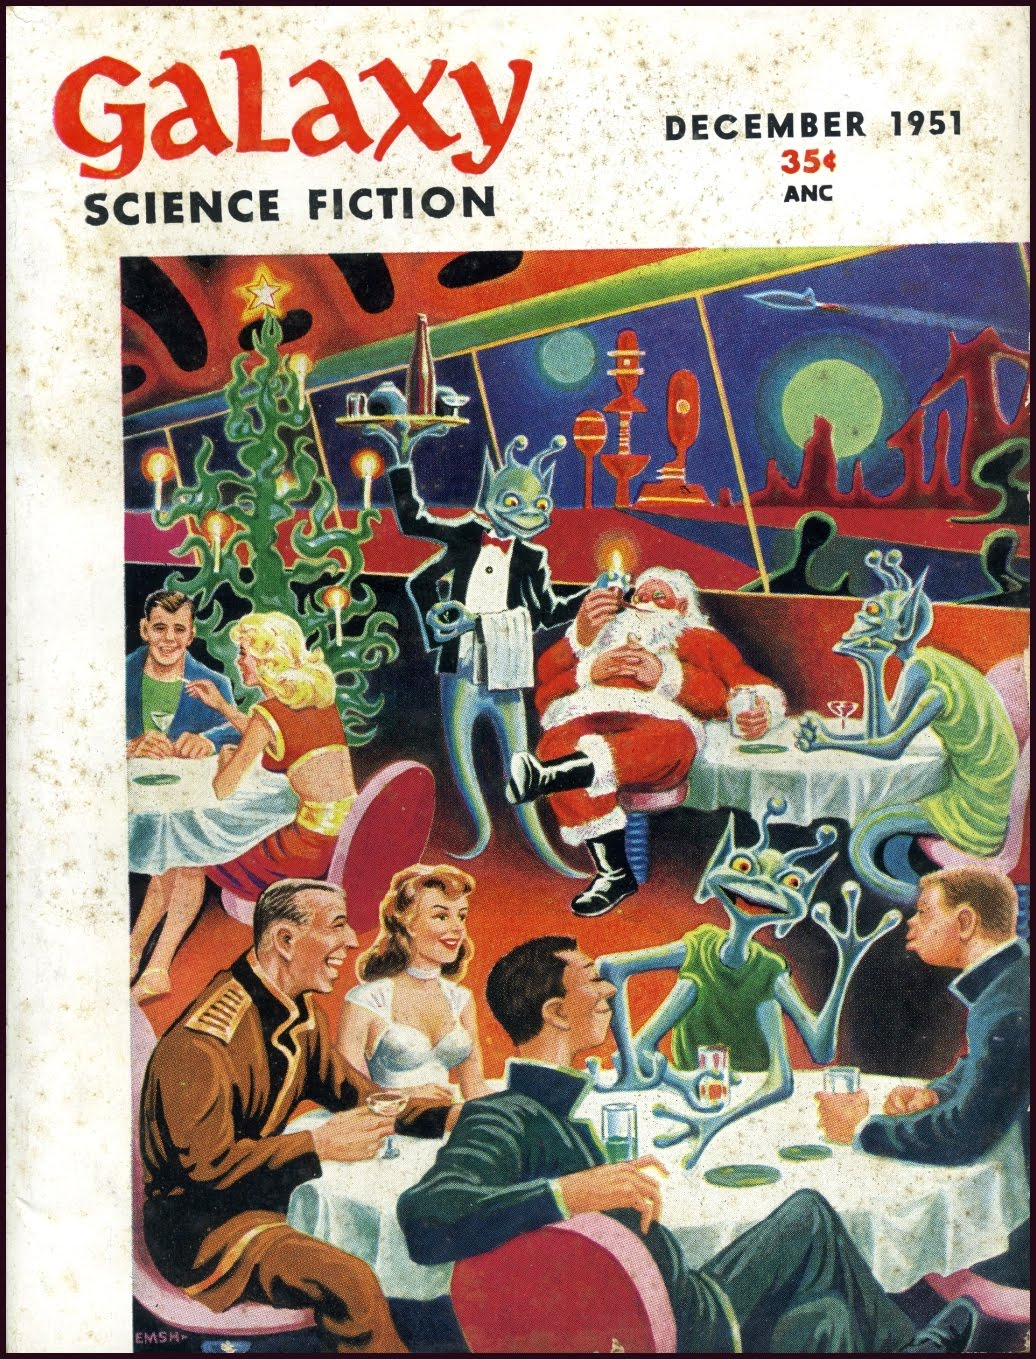 Figure 6: Galaxy Magazine December 1951